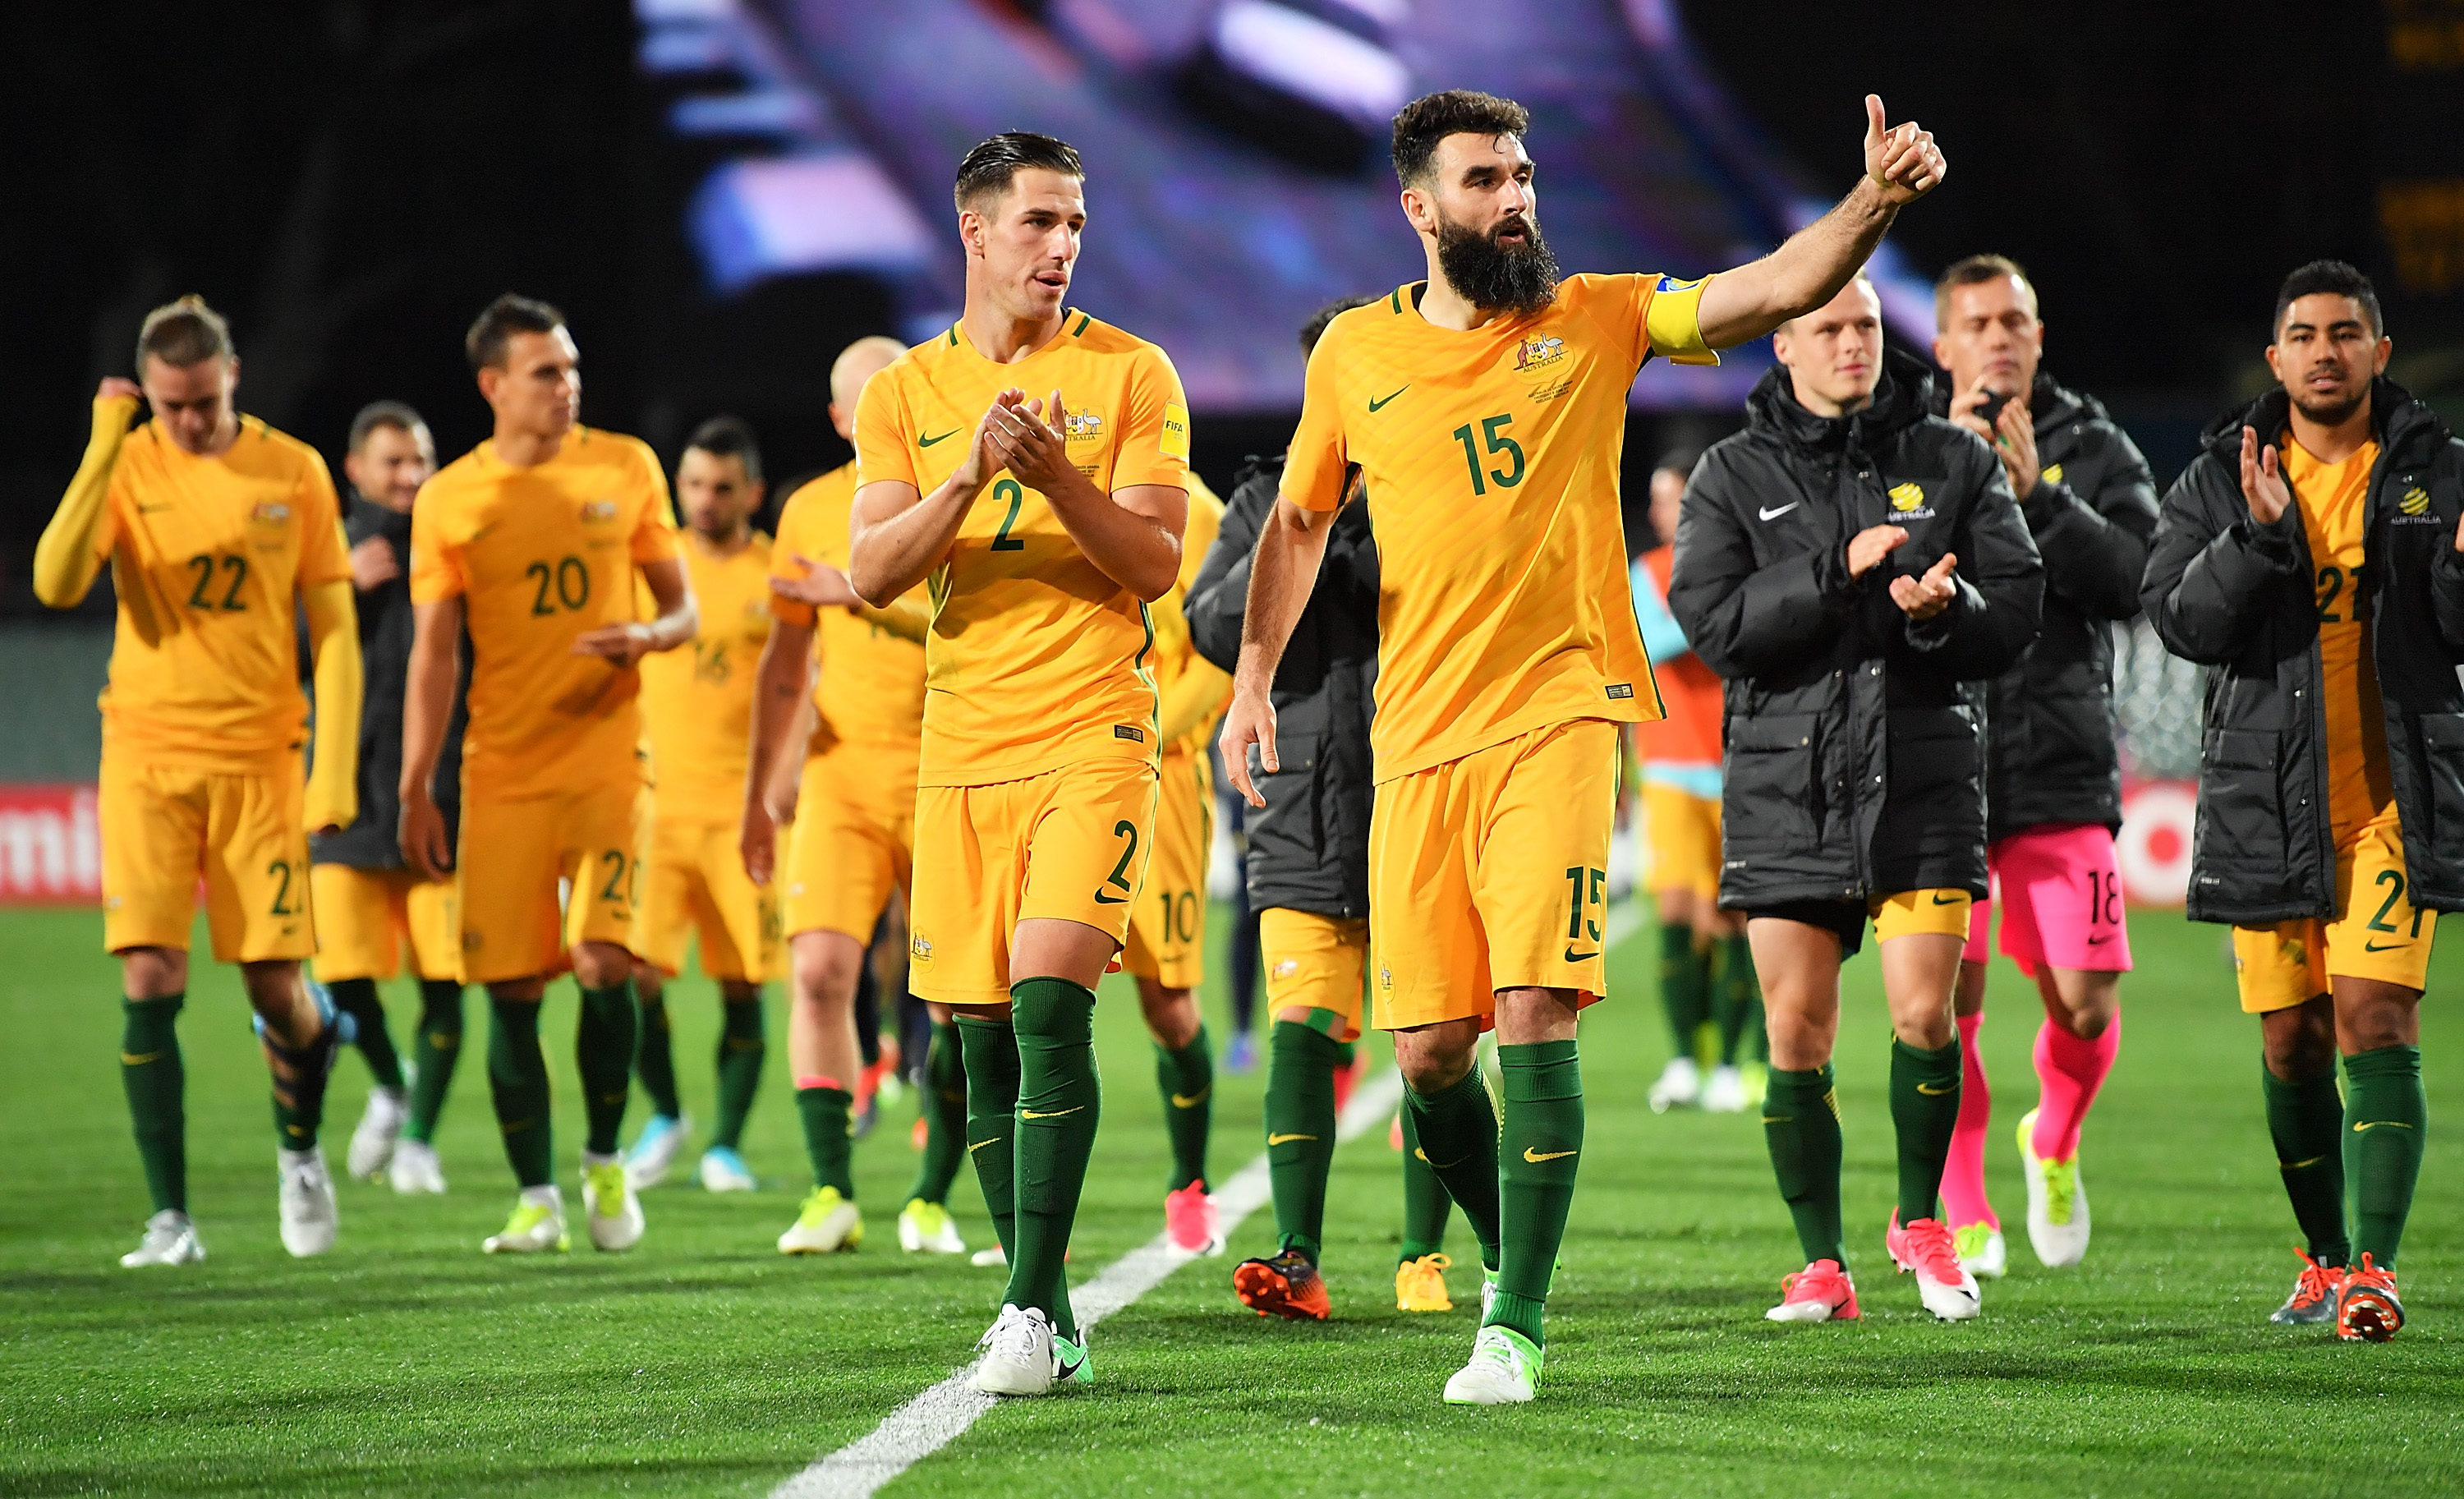 The Caltex Socceroos players thank the crowd of almost 30,000 fans at the Adelaide Oval after full-time.